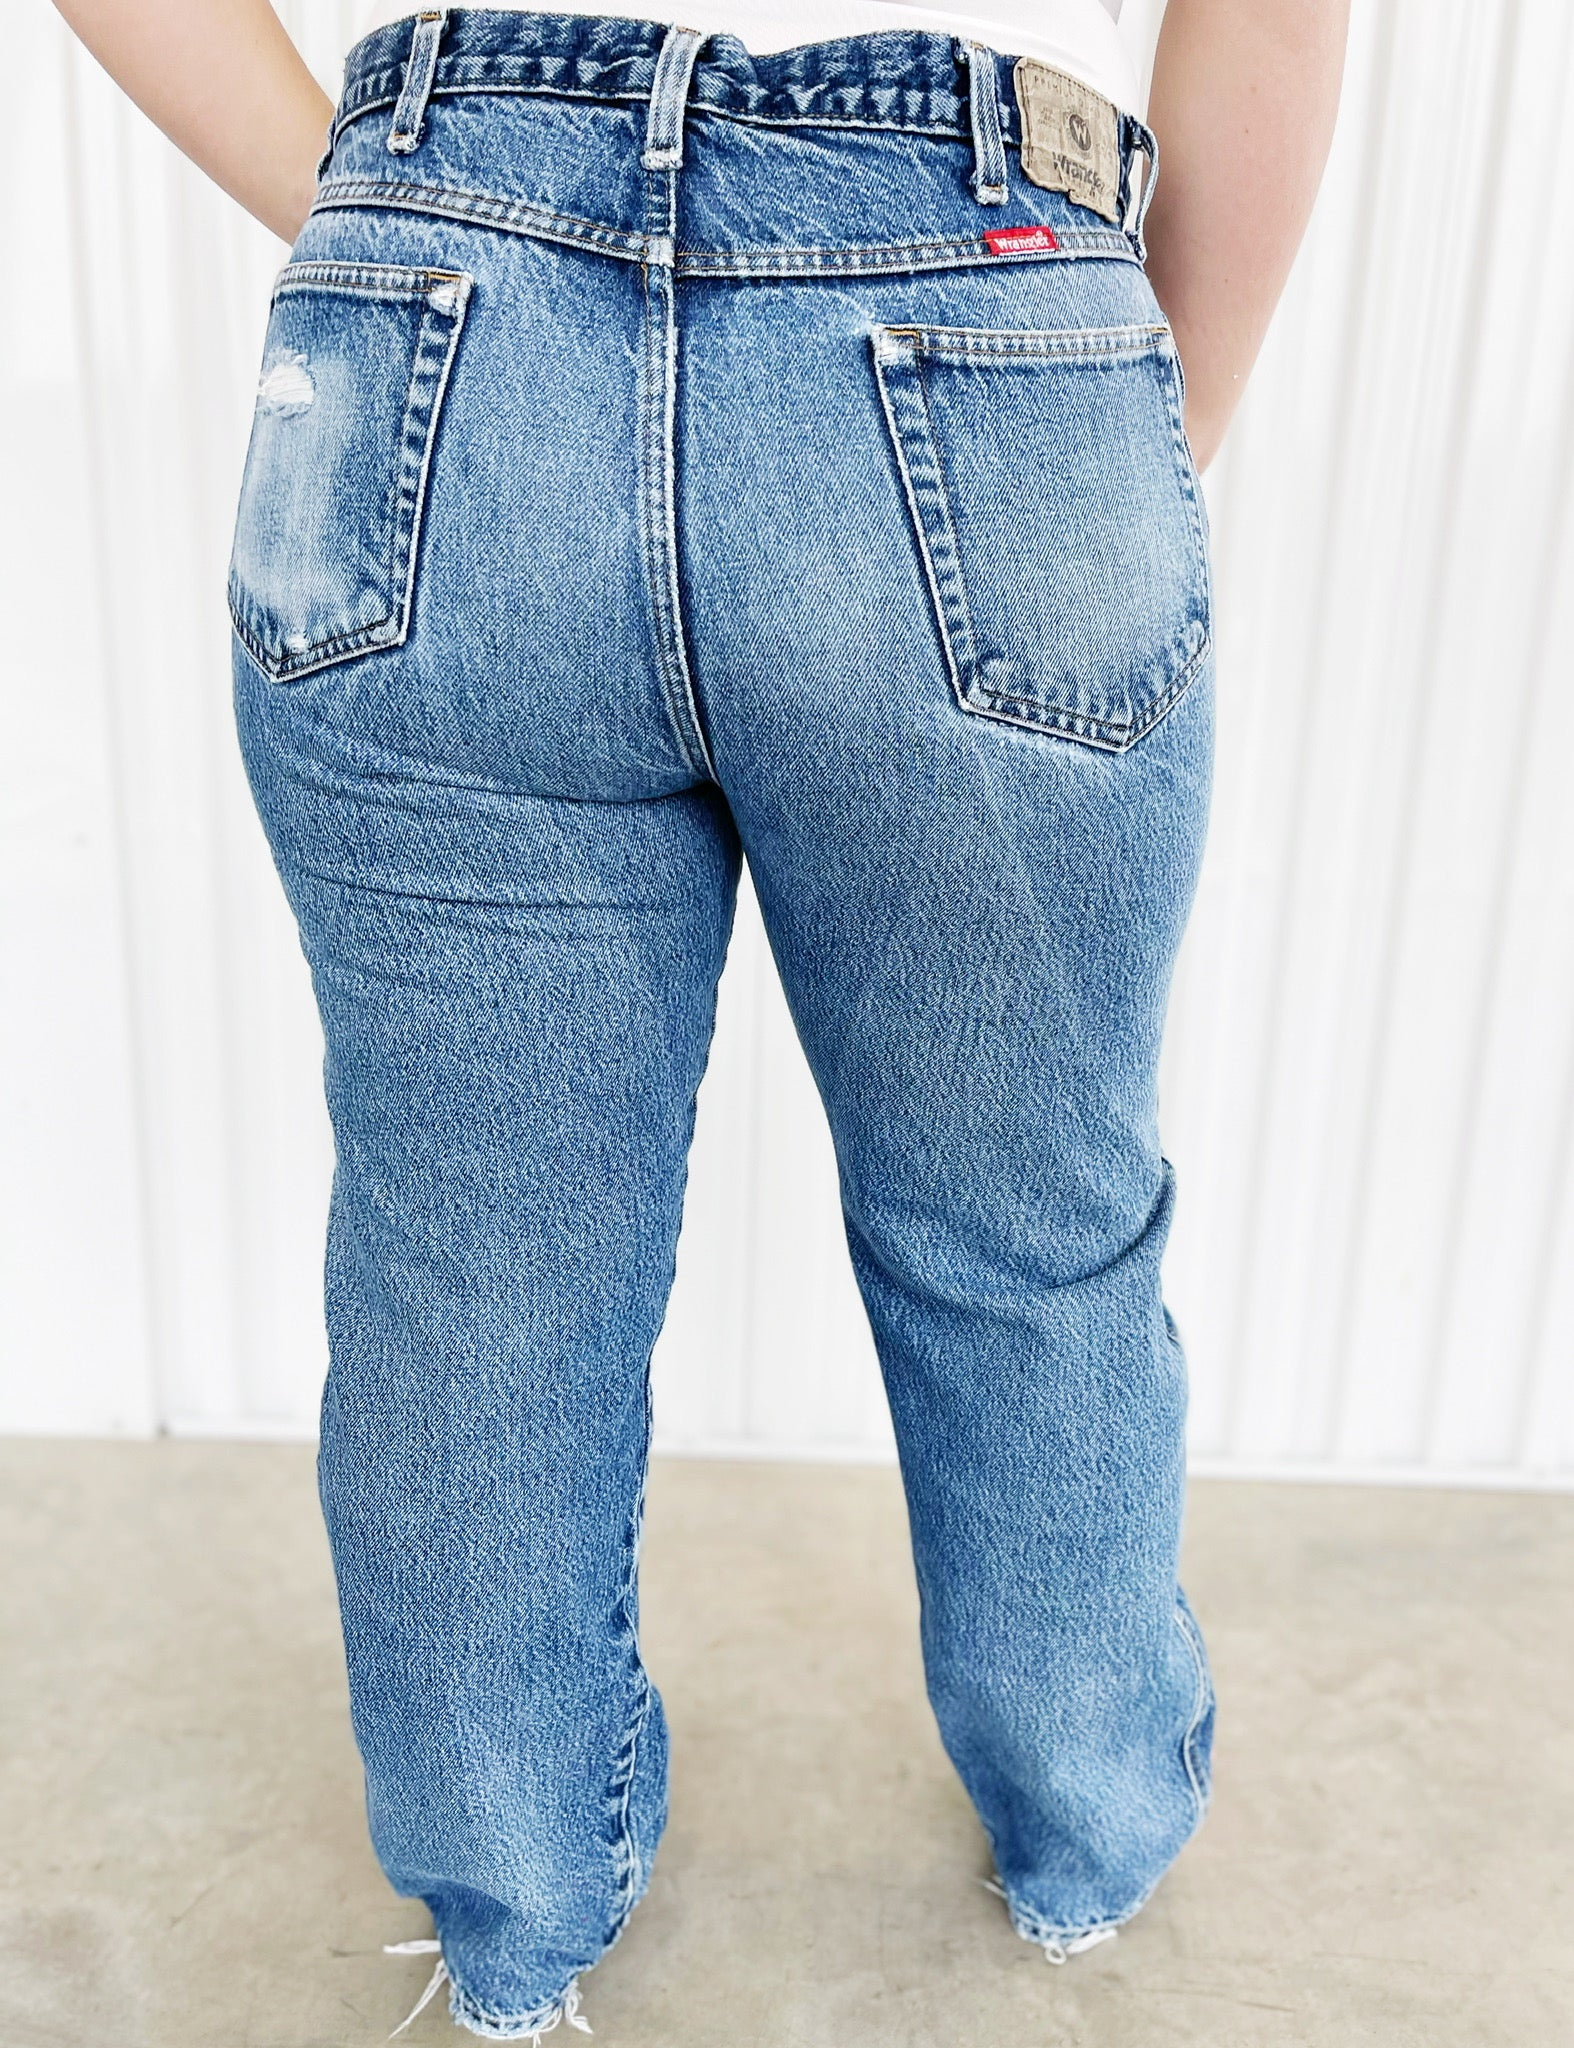 Wrangler Distressed Jeans (39)